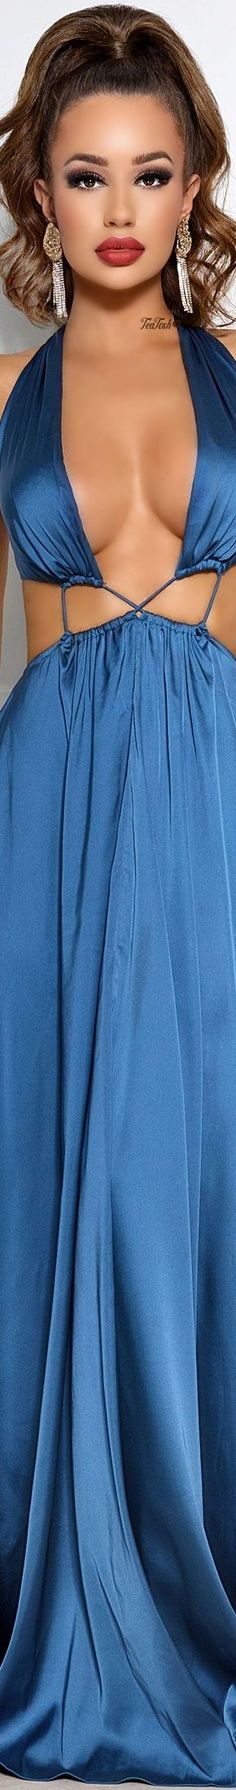 ❈Téa Tosh❈ #AbyssByAbby #teatosh Abyss By Abby, Elegant Dresses, Formal Dresses, Evening Cocktail, Beautiful Women, Velvet, Satin, Womens Fashion, Collection